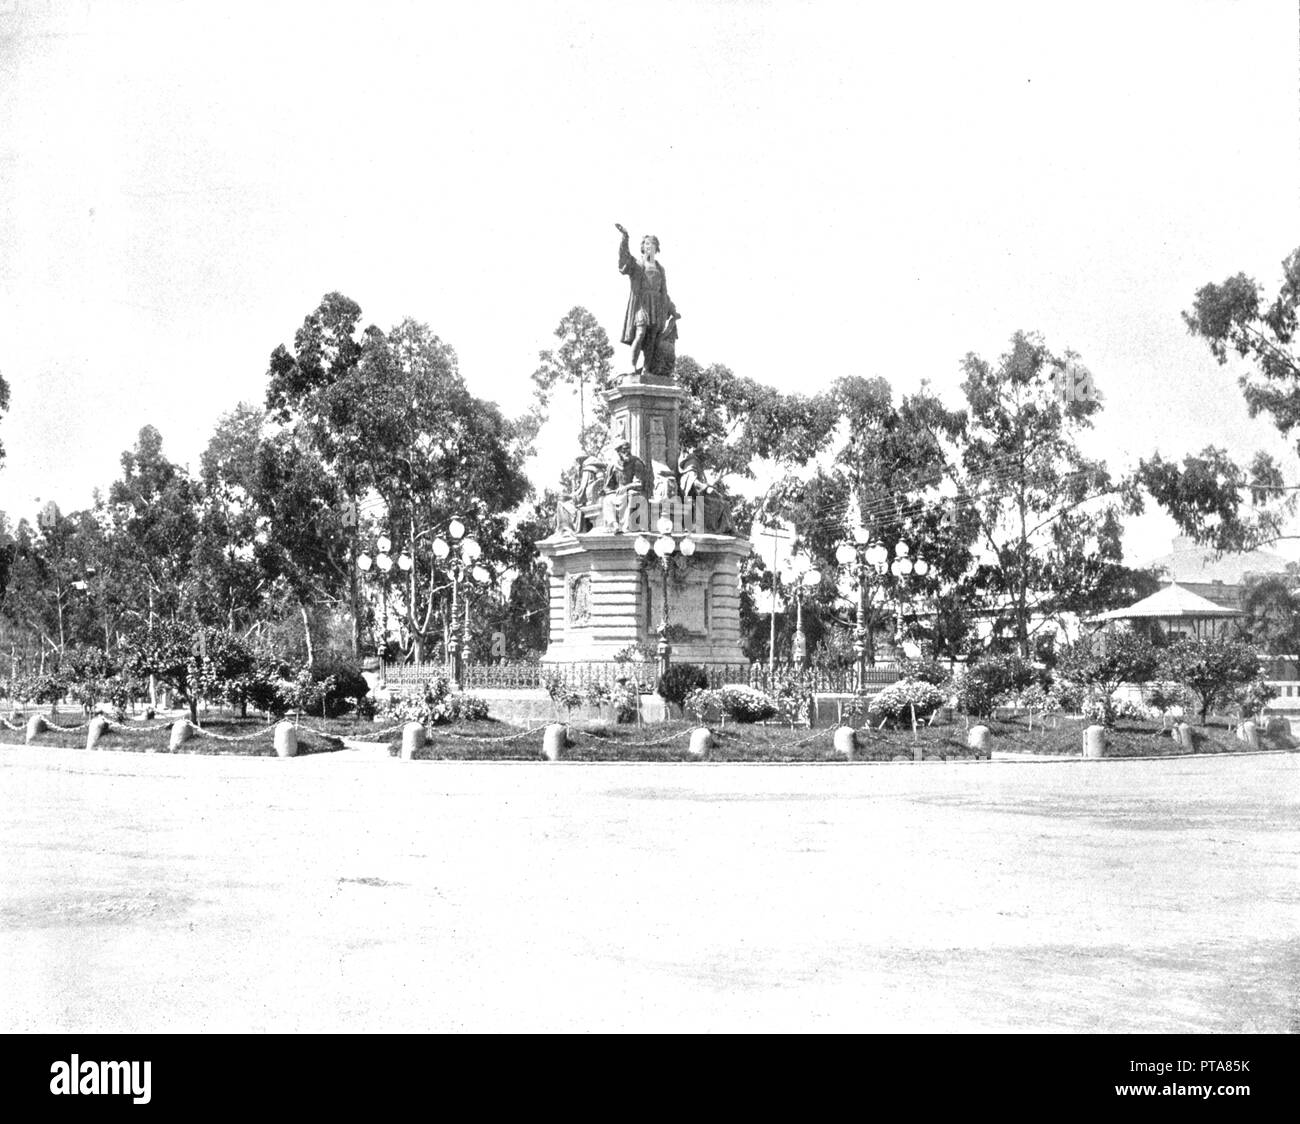 Statue of Columbus on the Paseo, Mexico City, Mexico, c1900.  Creator: Unknown. - Stock Image